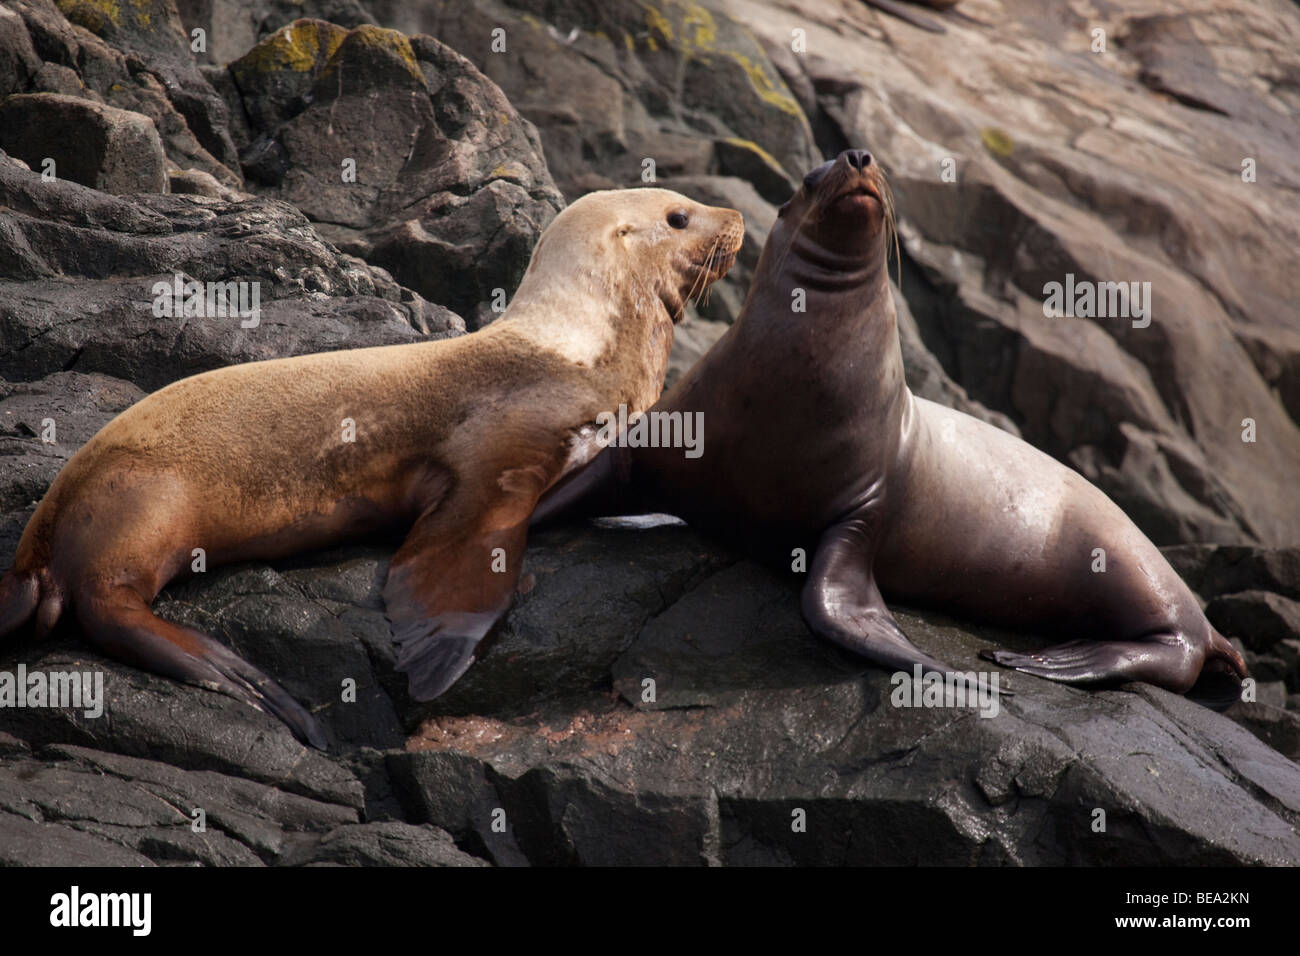 Pair of stellar sea lions in northwest Canada. - Stock Image